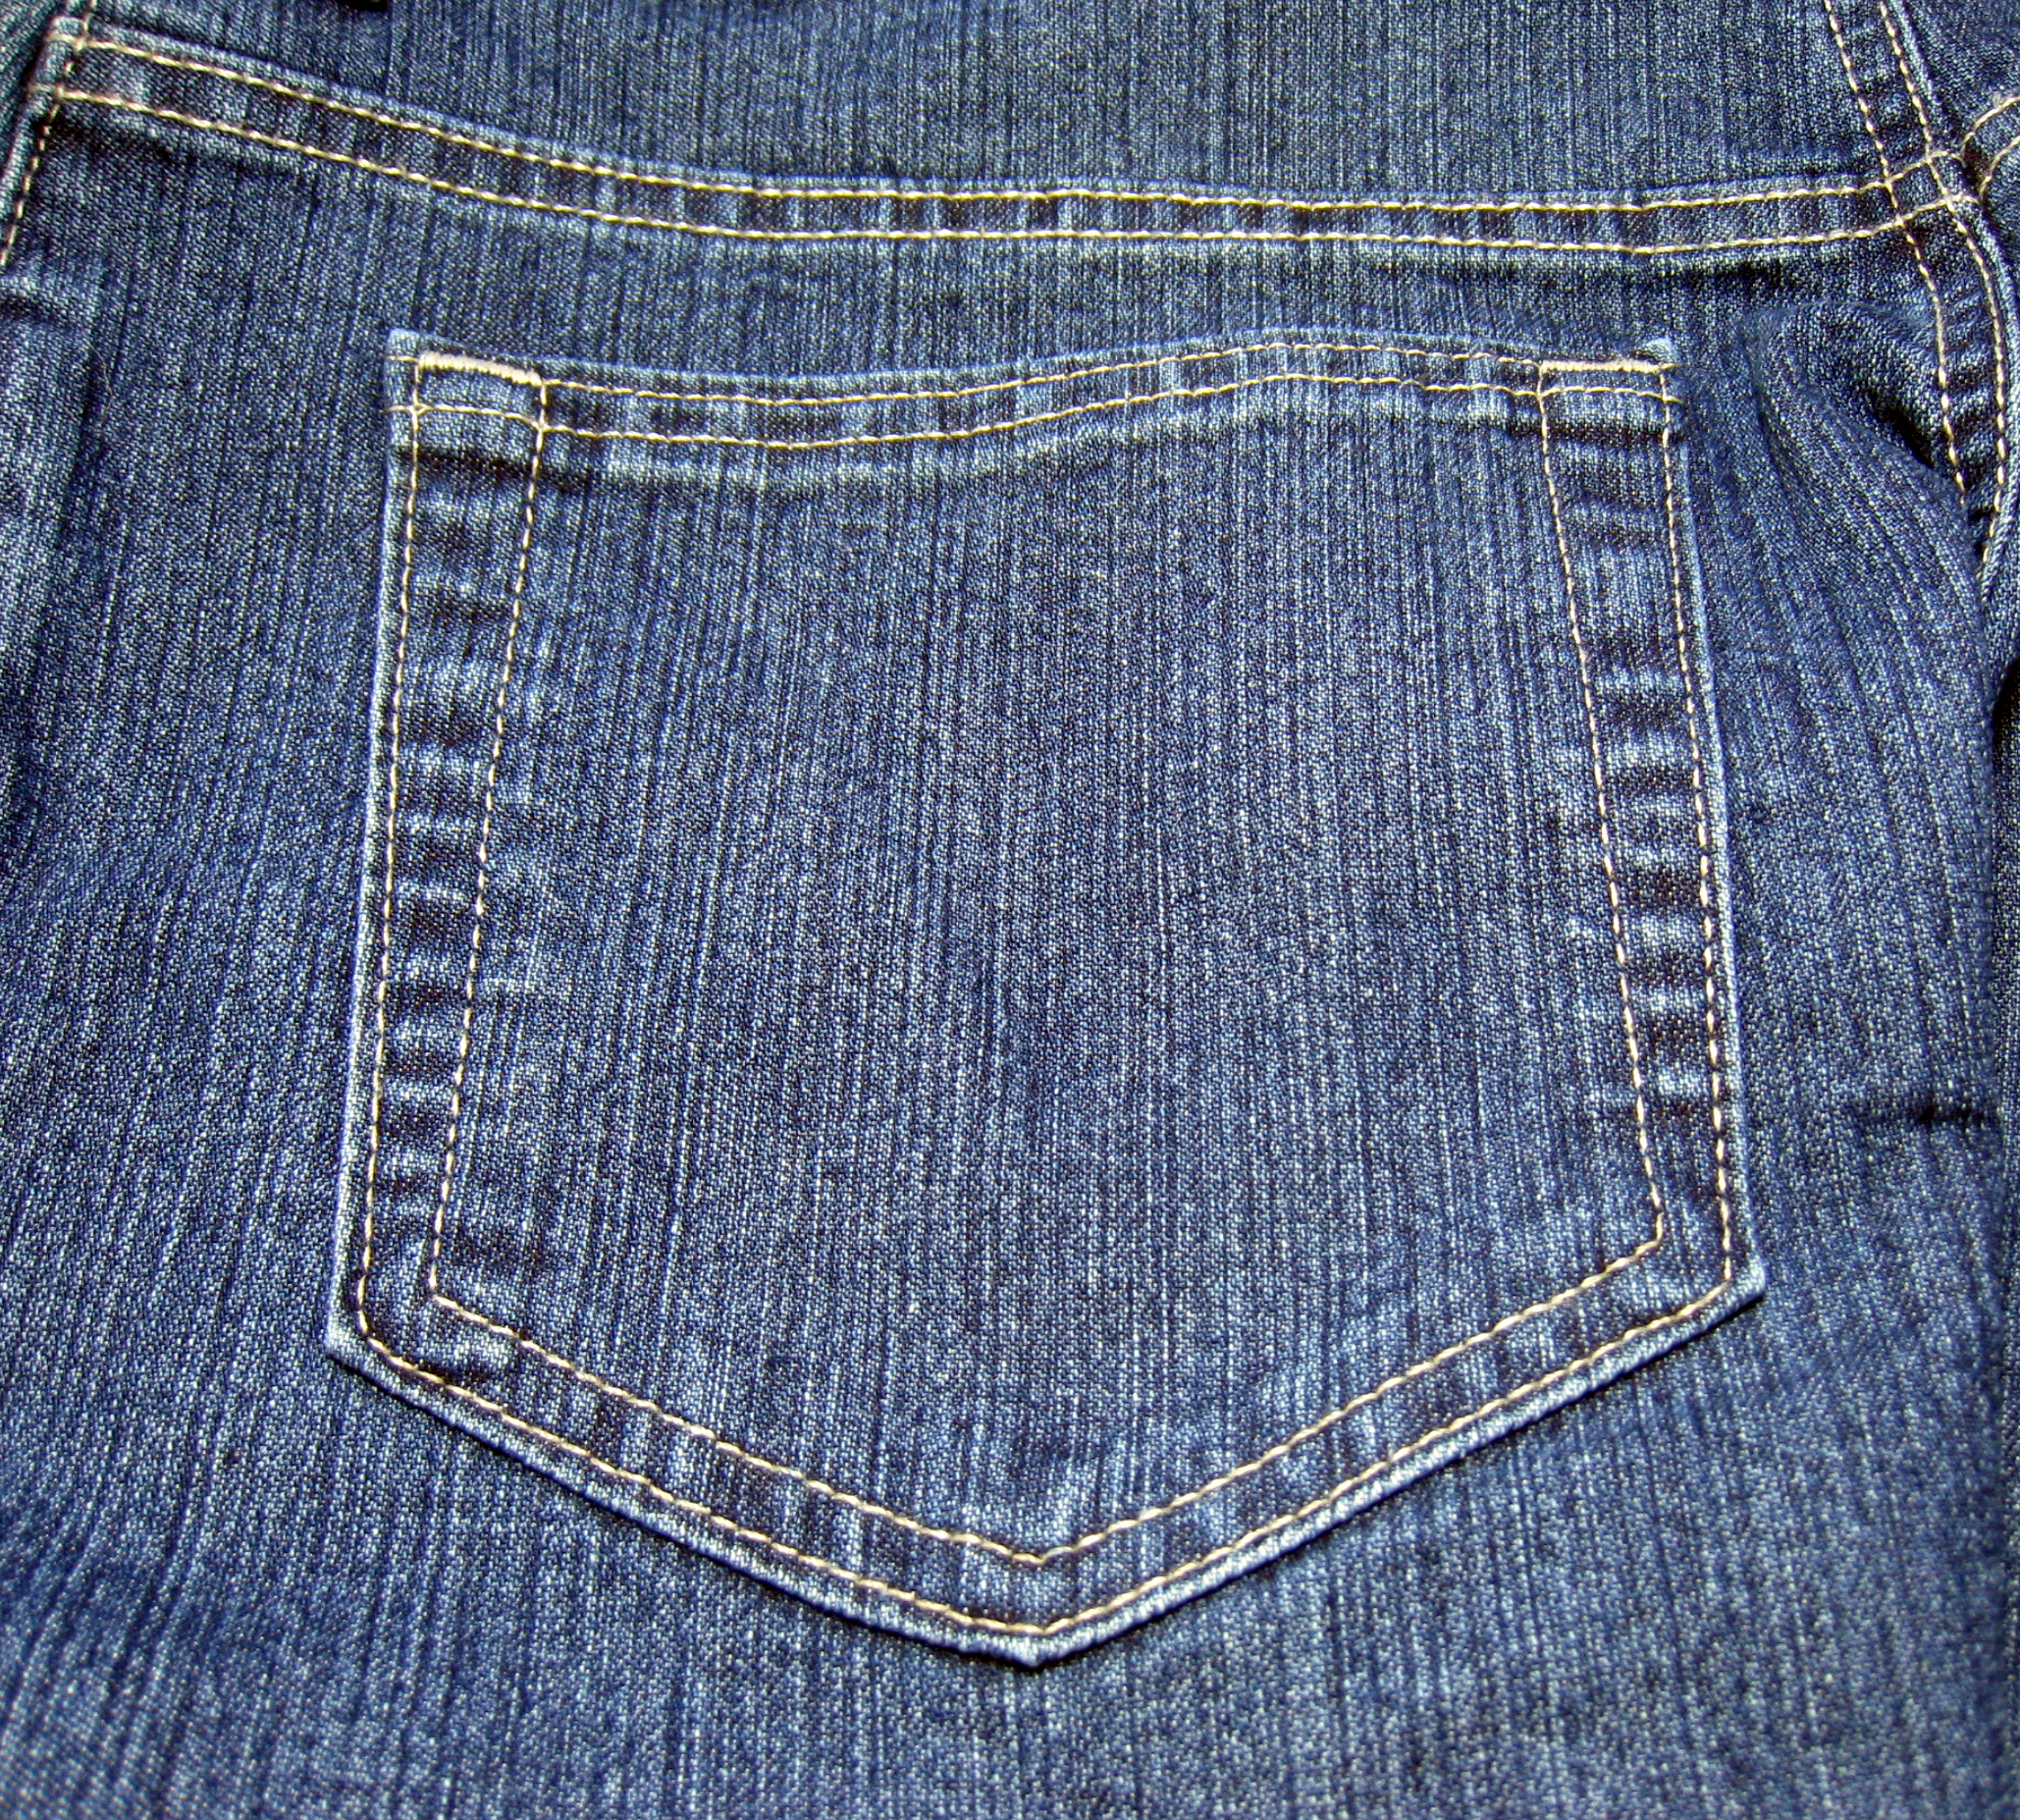 http://upload.wikimedia.org/wikipedia/commons/9/9d/Jeans_pocket_back.jpg